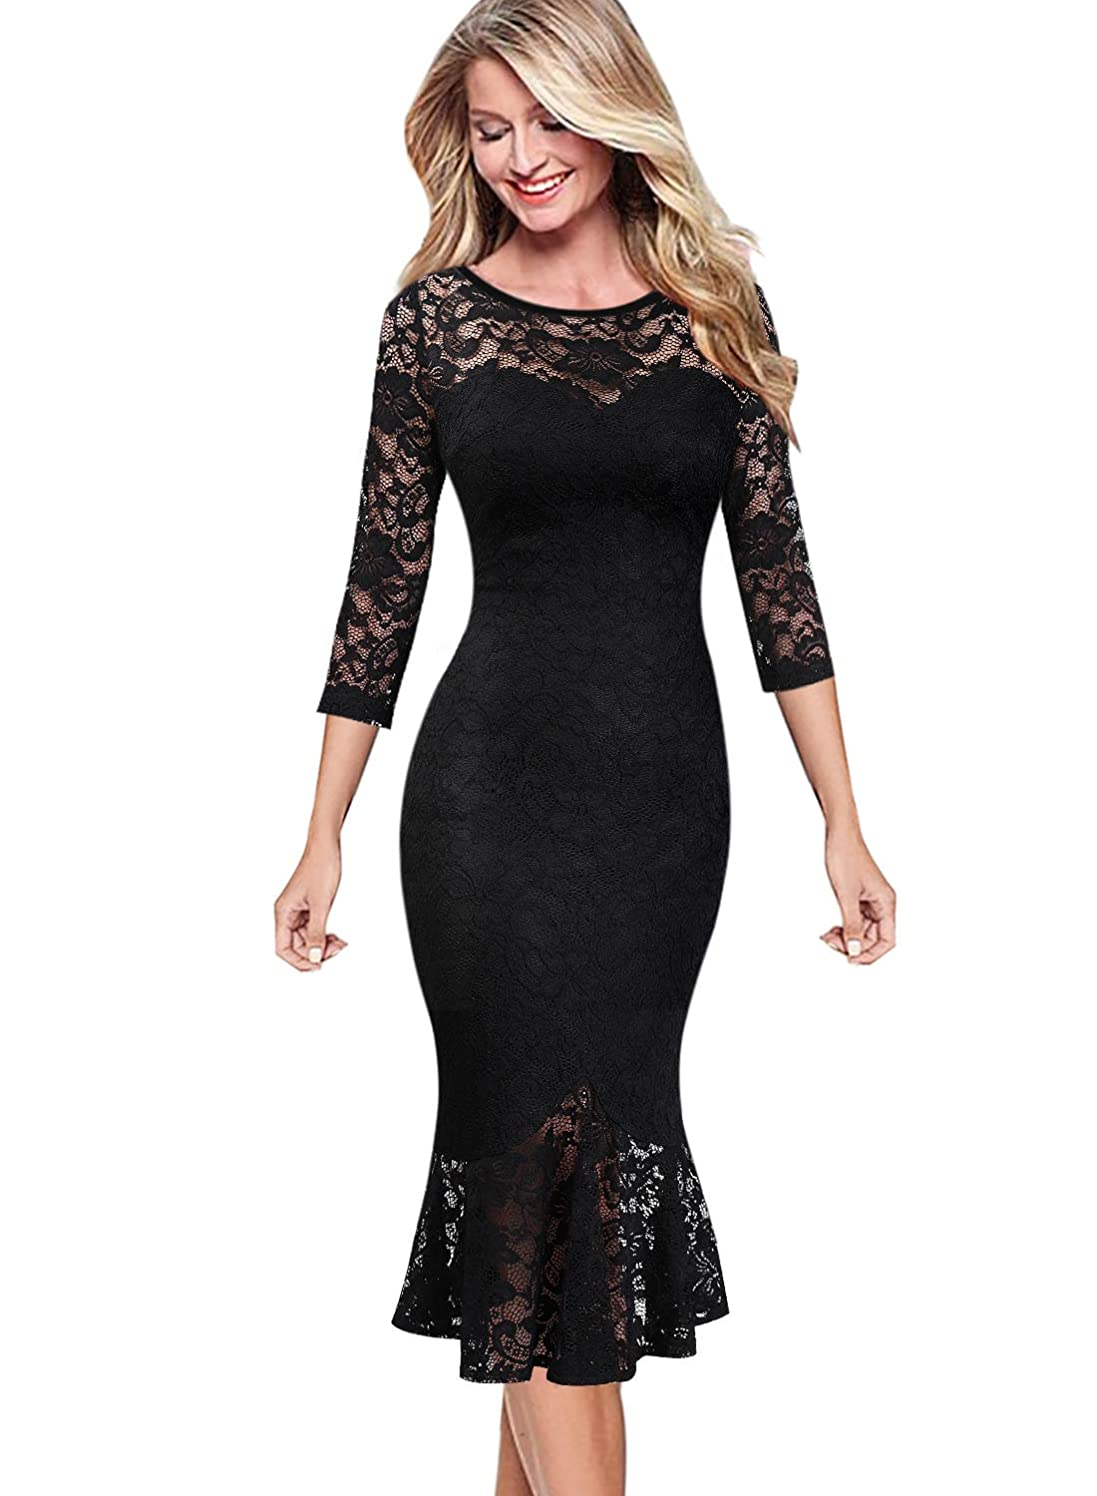 VFSHOW Womens Elegant Floral Lace Cocktail Party Mermaid Midi Mid-Calf Dress 1219 BLK XL